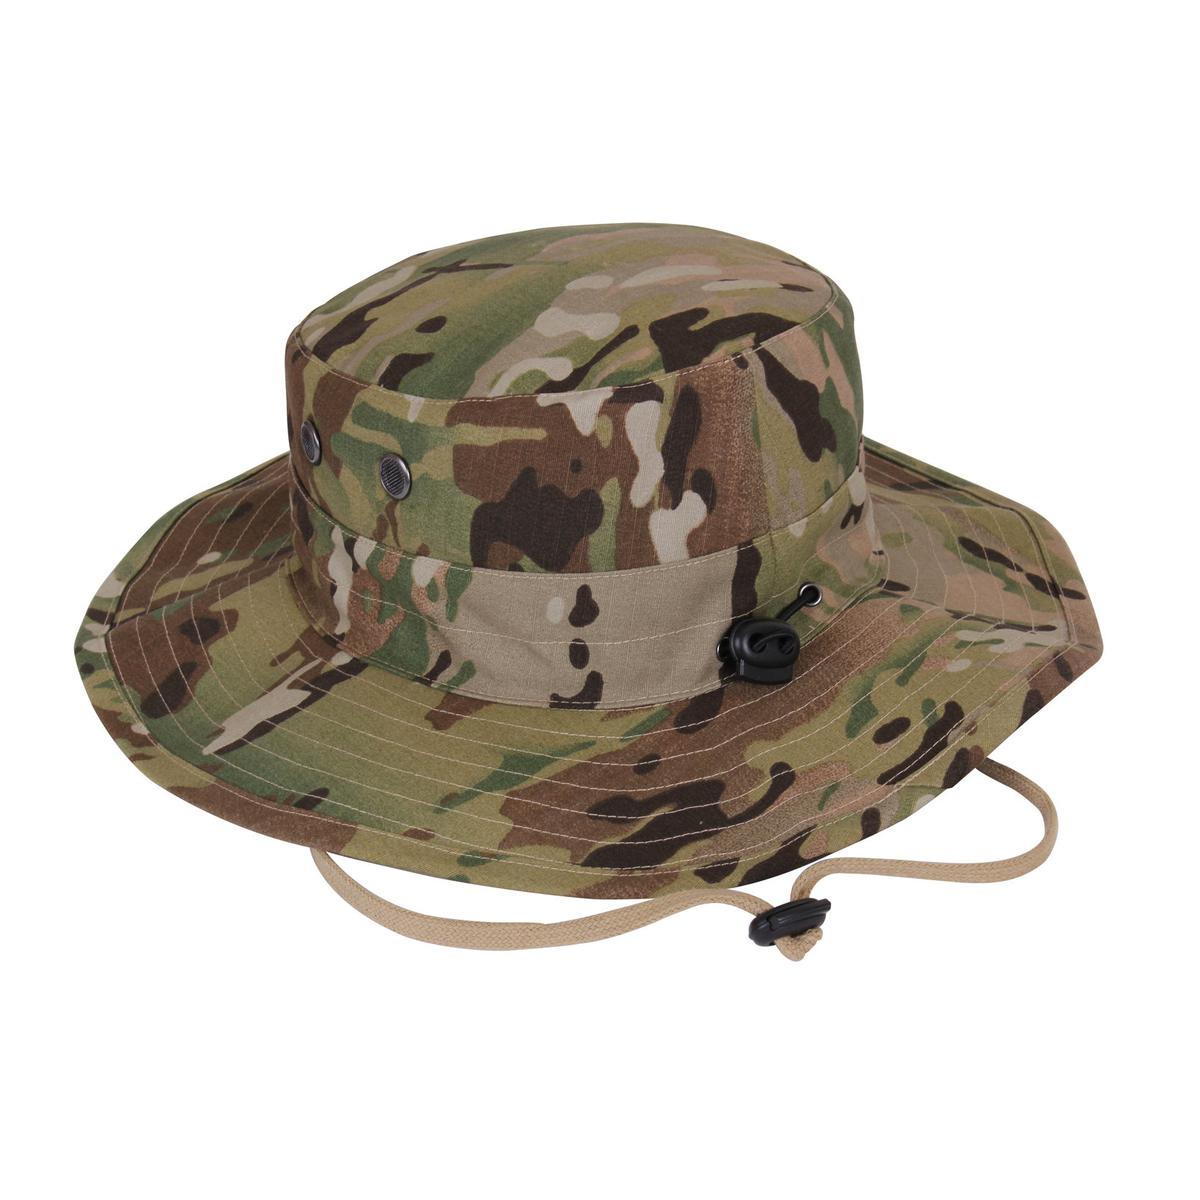 b6f413f1dccaa Rothco MultiCam Adjustable Boonie Hat